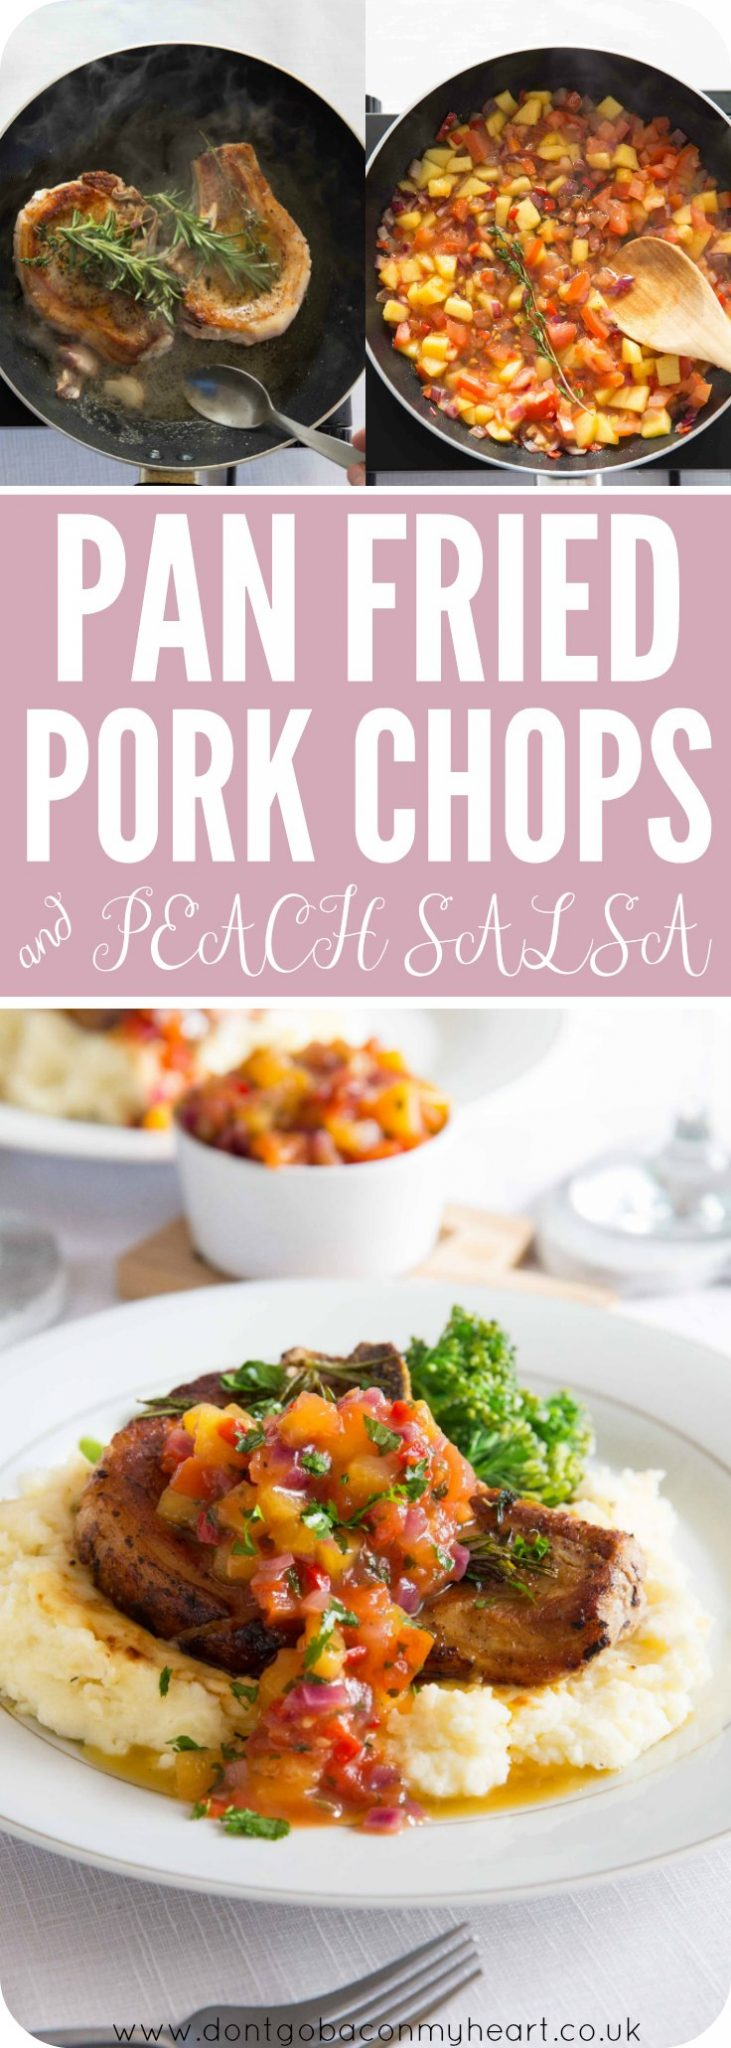 These Easy Pan Fried Pork Chops with Peach Salsa really couldn't be more quick to make. Although they make a fancy looking dinner, they're SO easy to whip up in the comfort of your own home. The PERFECT date night dinner! #pork #porkchops #salsa #peachsalsa